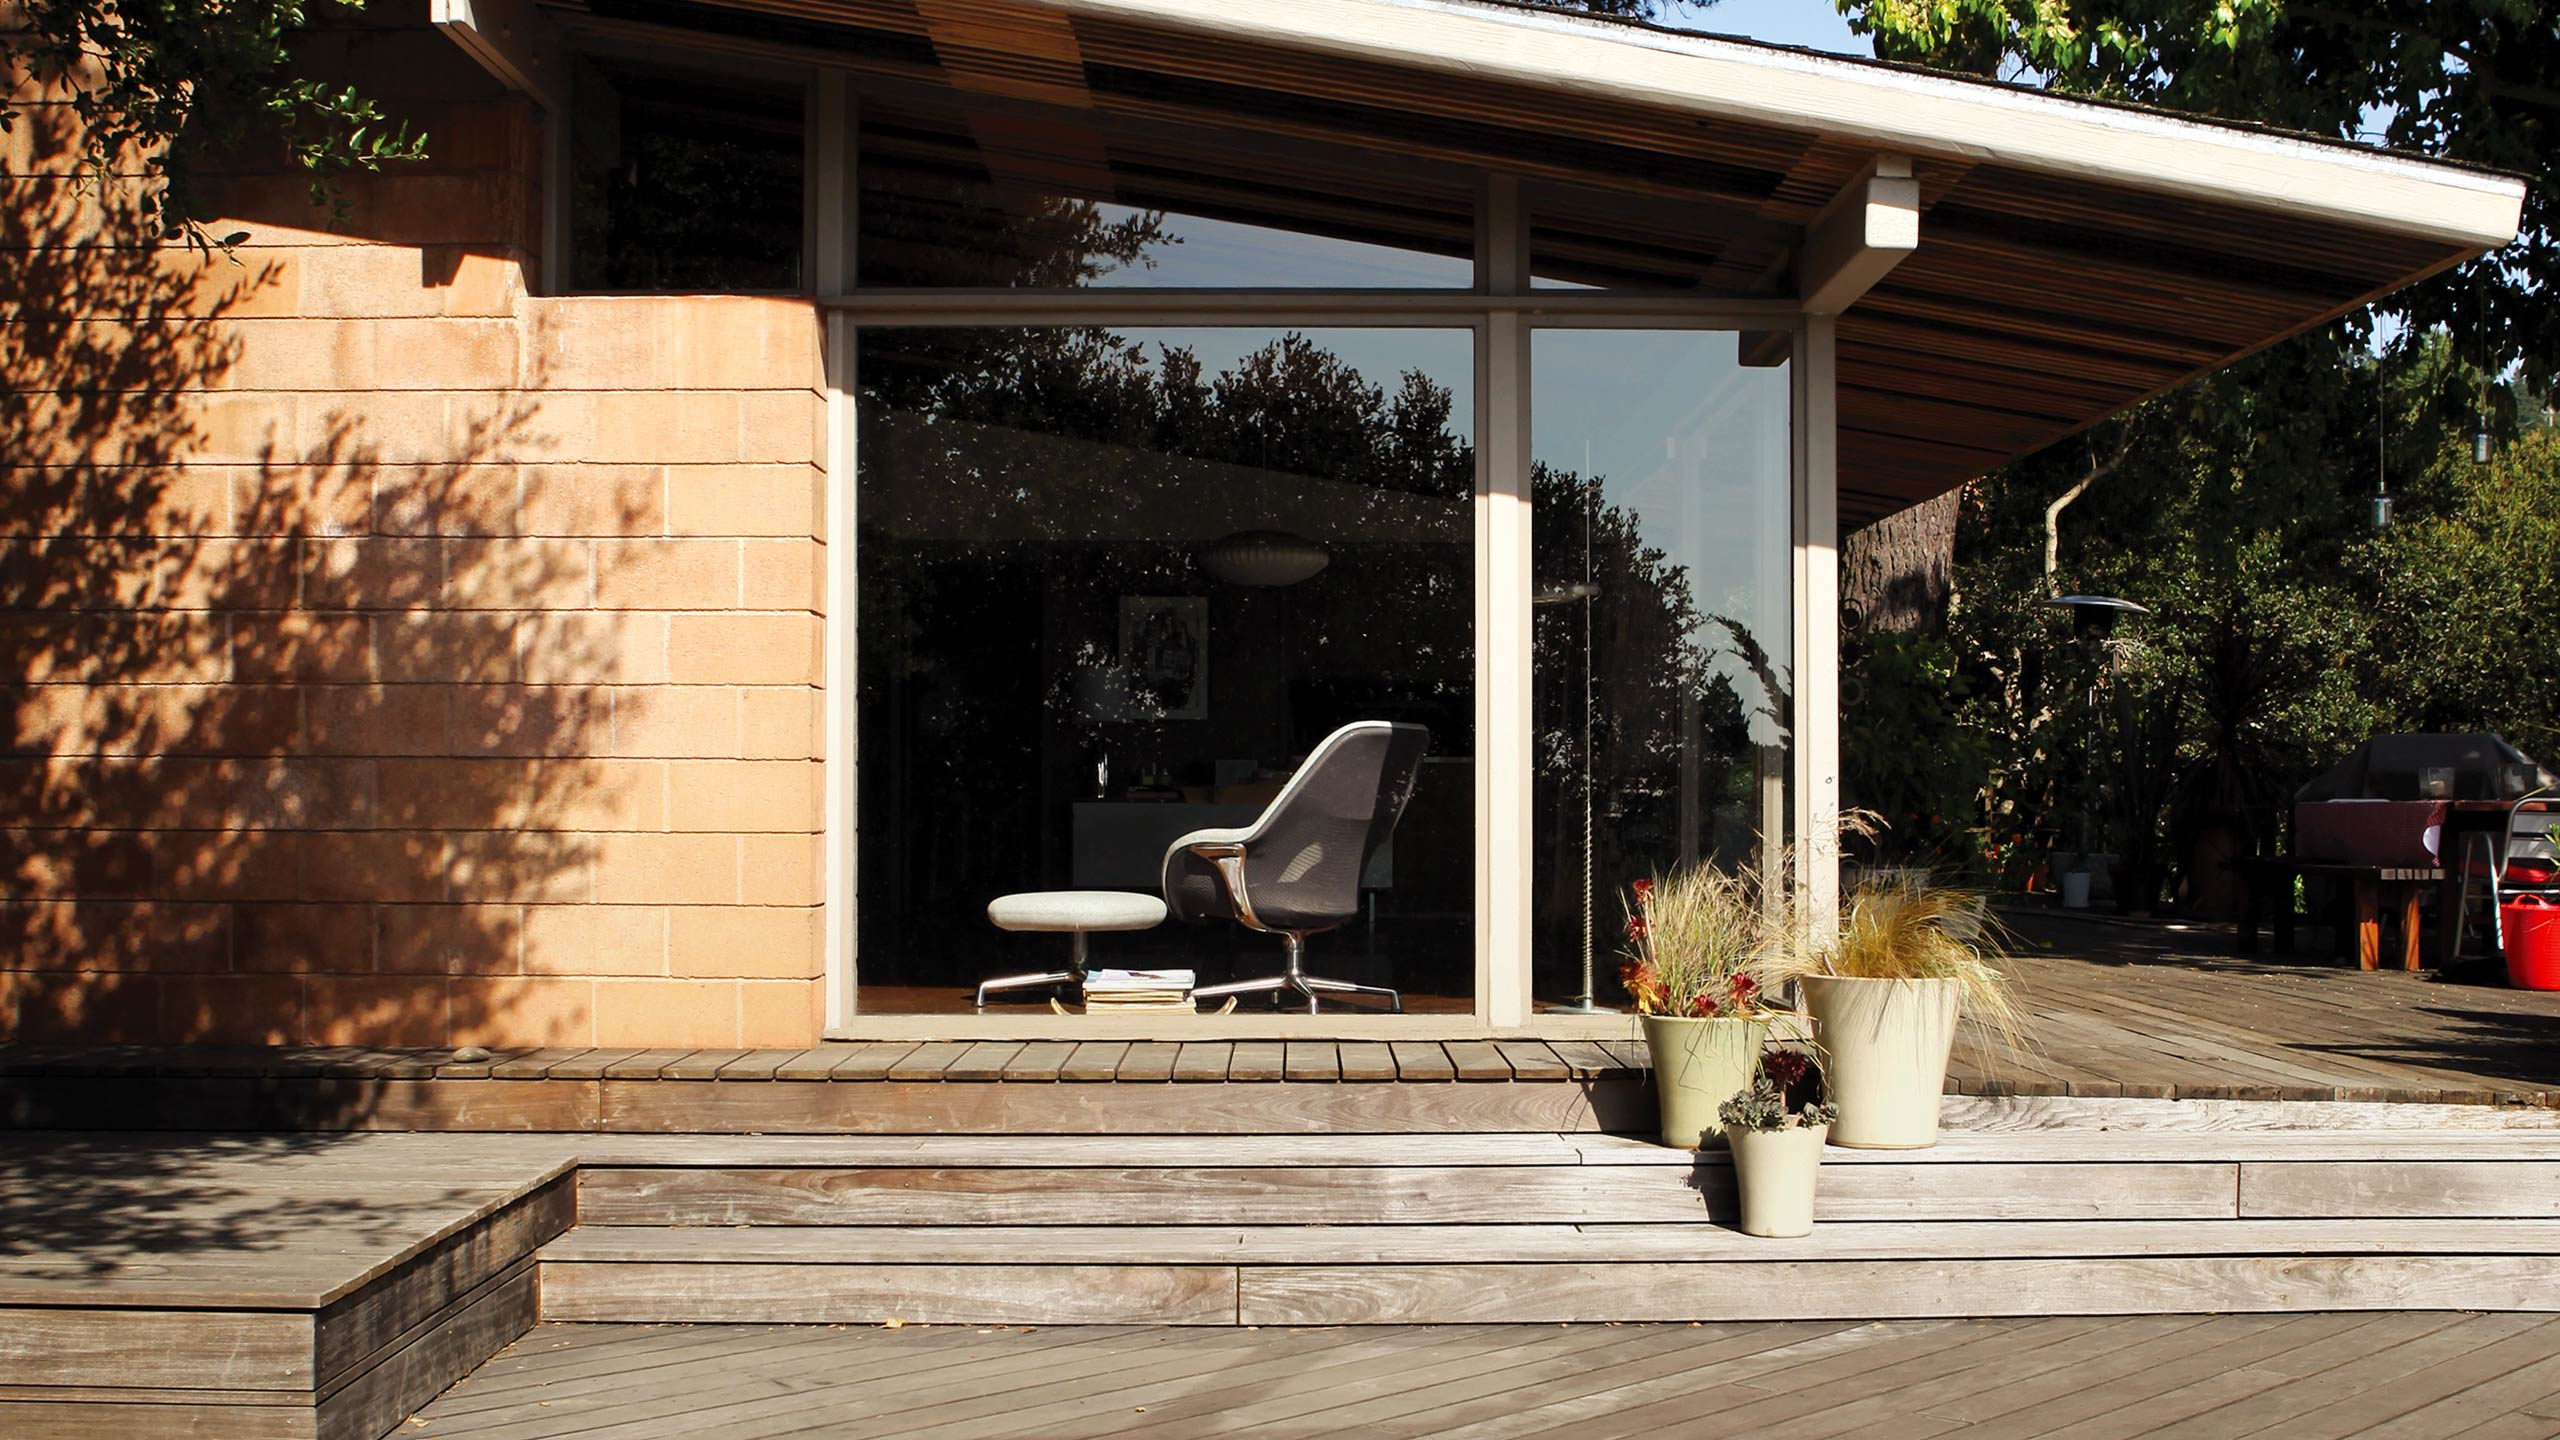 Coalesse Interactive Photograph - Exterior of a House with SW1 chair